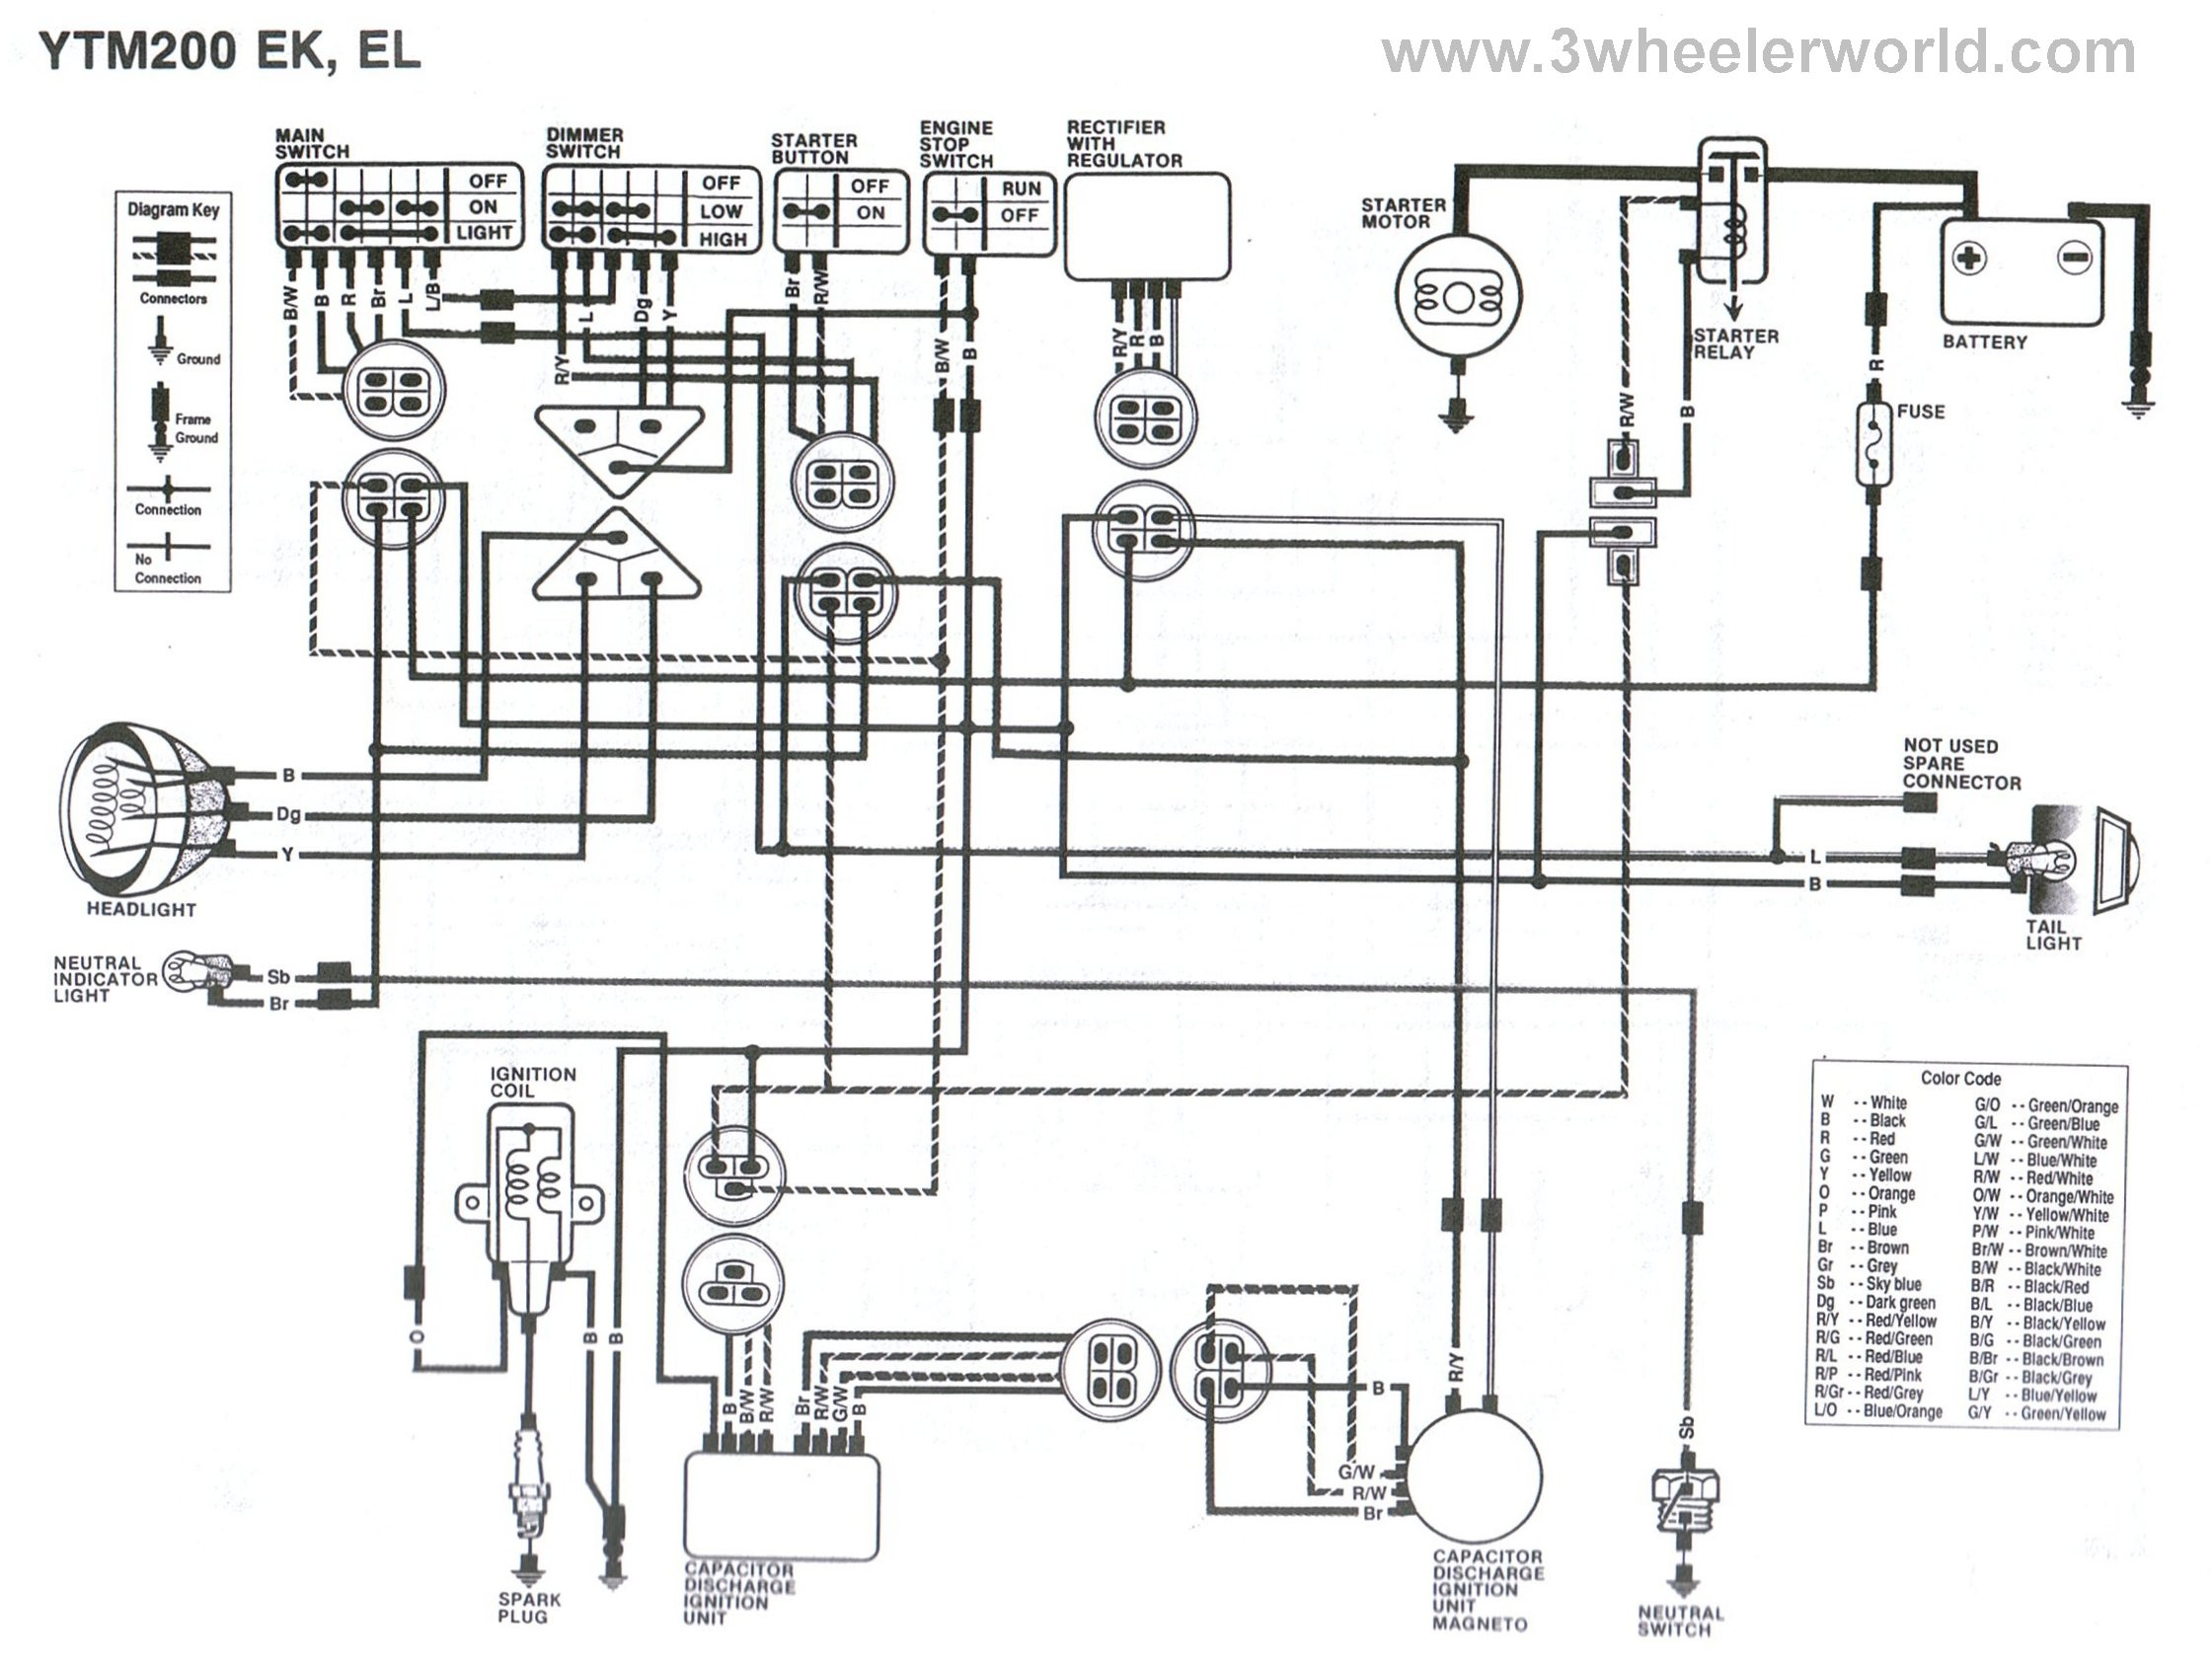 Yamaha Outboard Engine Wiring Diagram